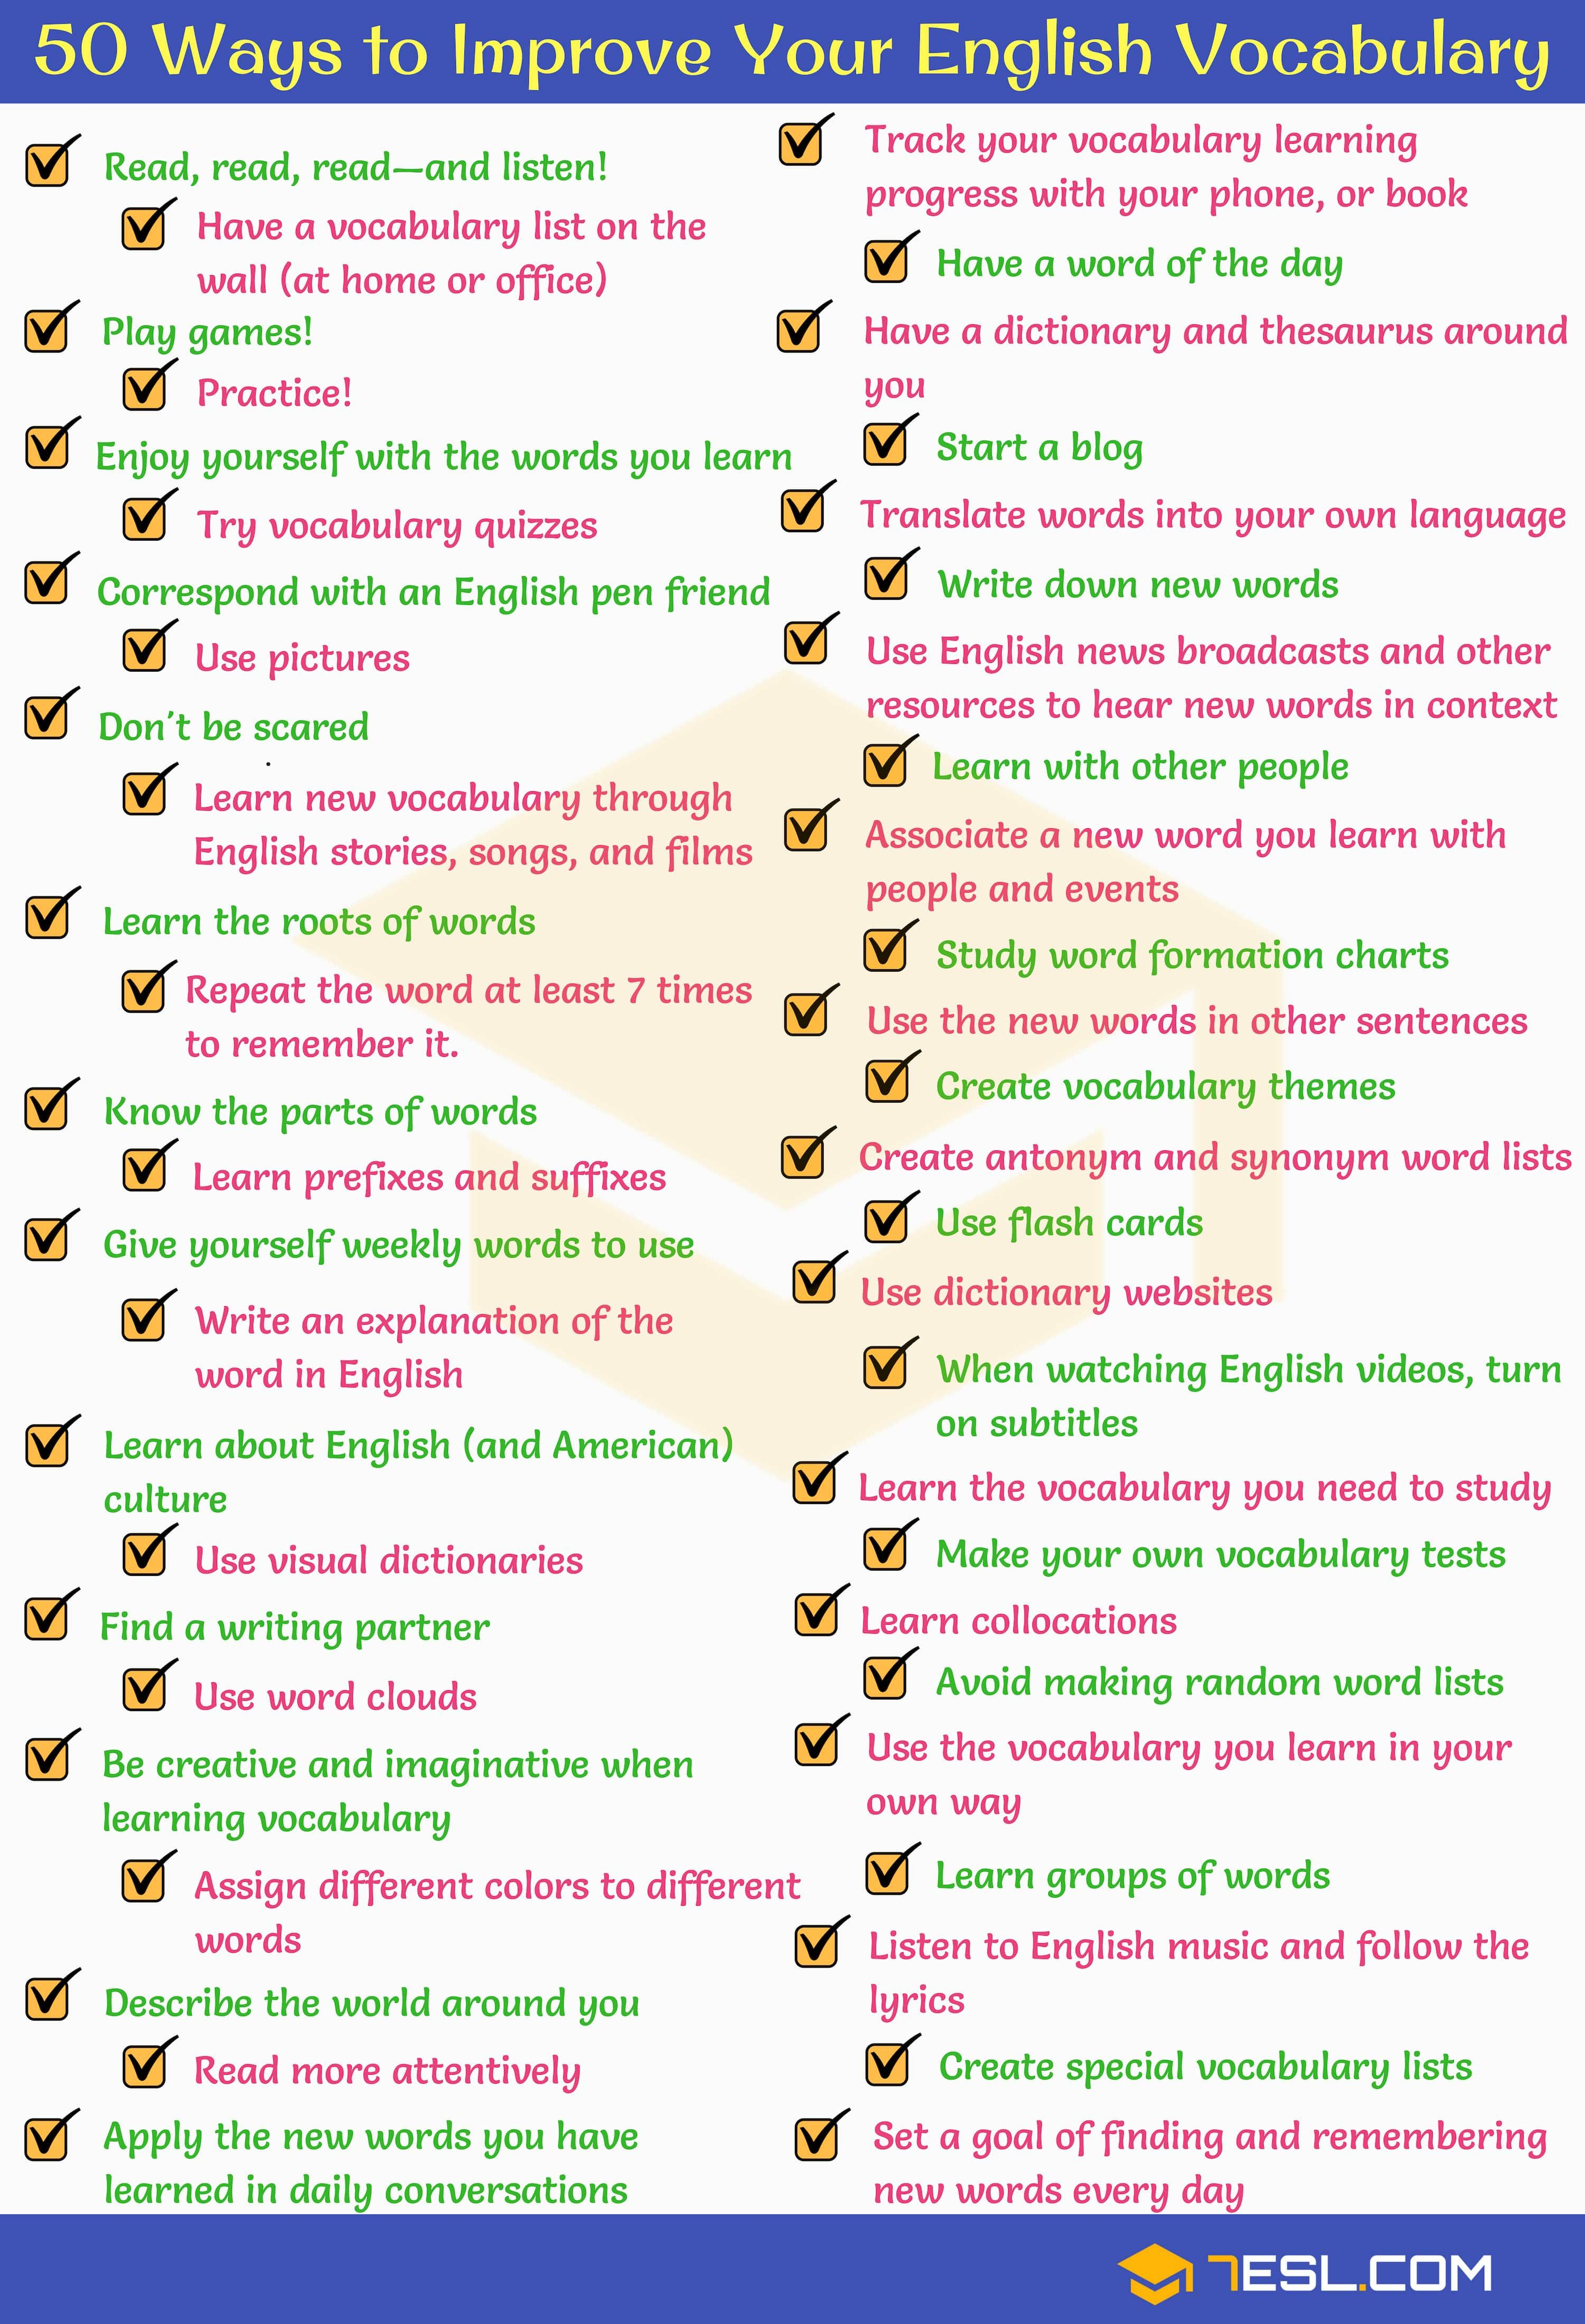 How To Improve Vocabulary 50 Simple Tips 7esl English Vocabulary Improve Your English Vocabulary [ 4400 x 3000 Pixel ]